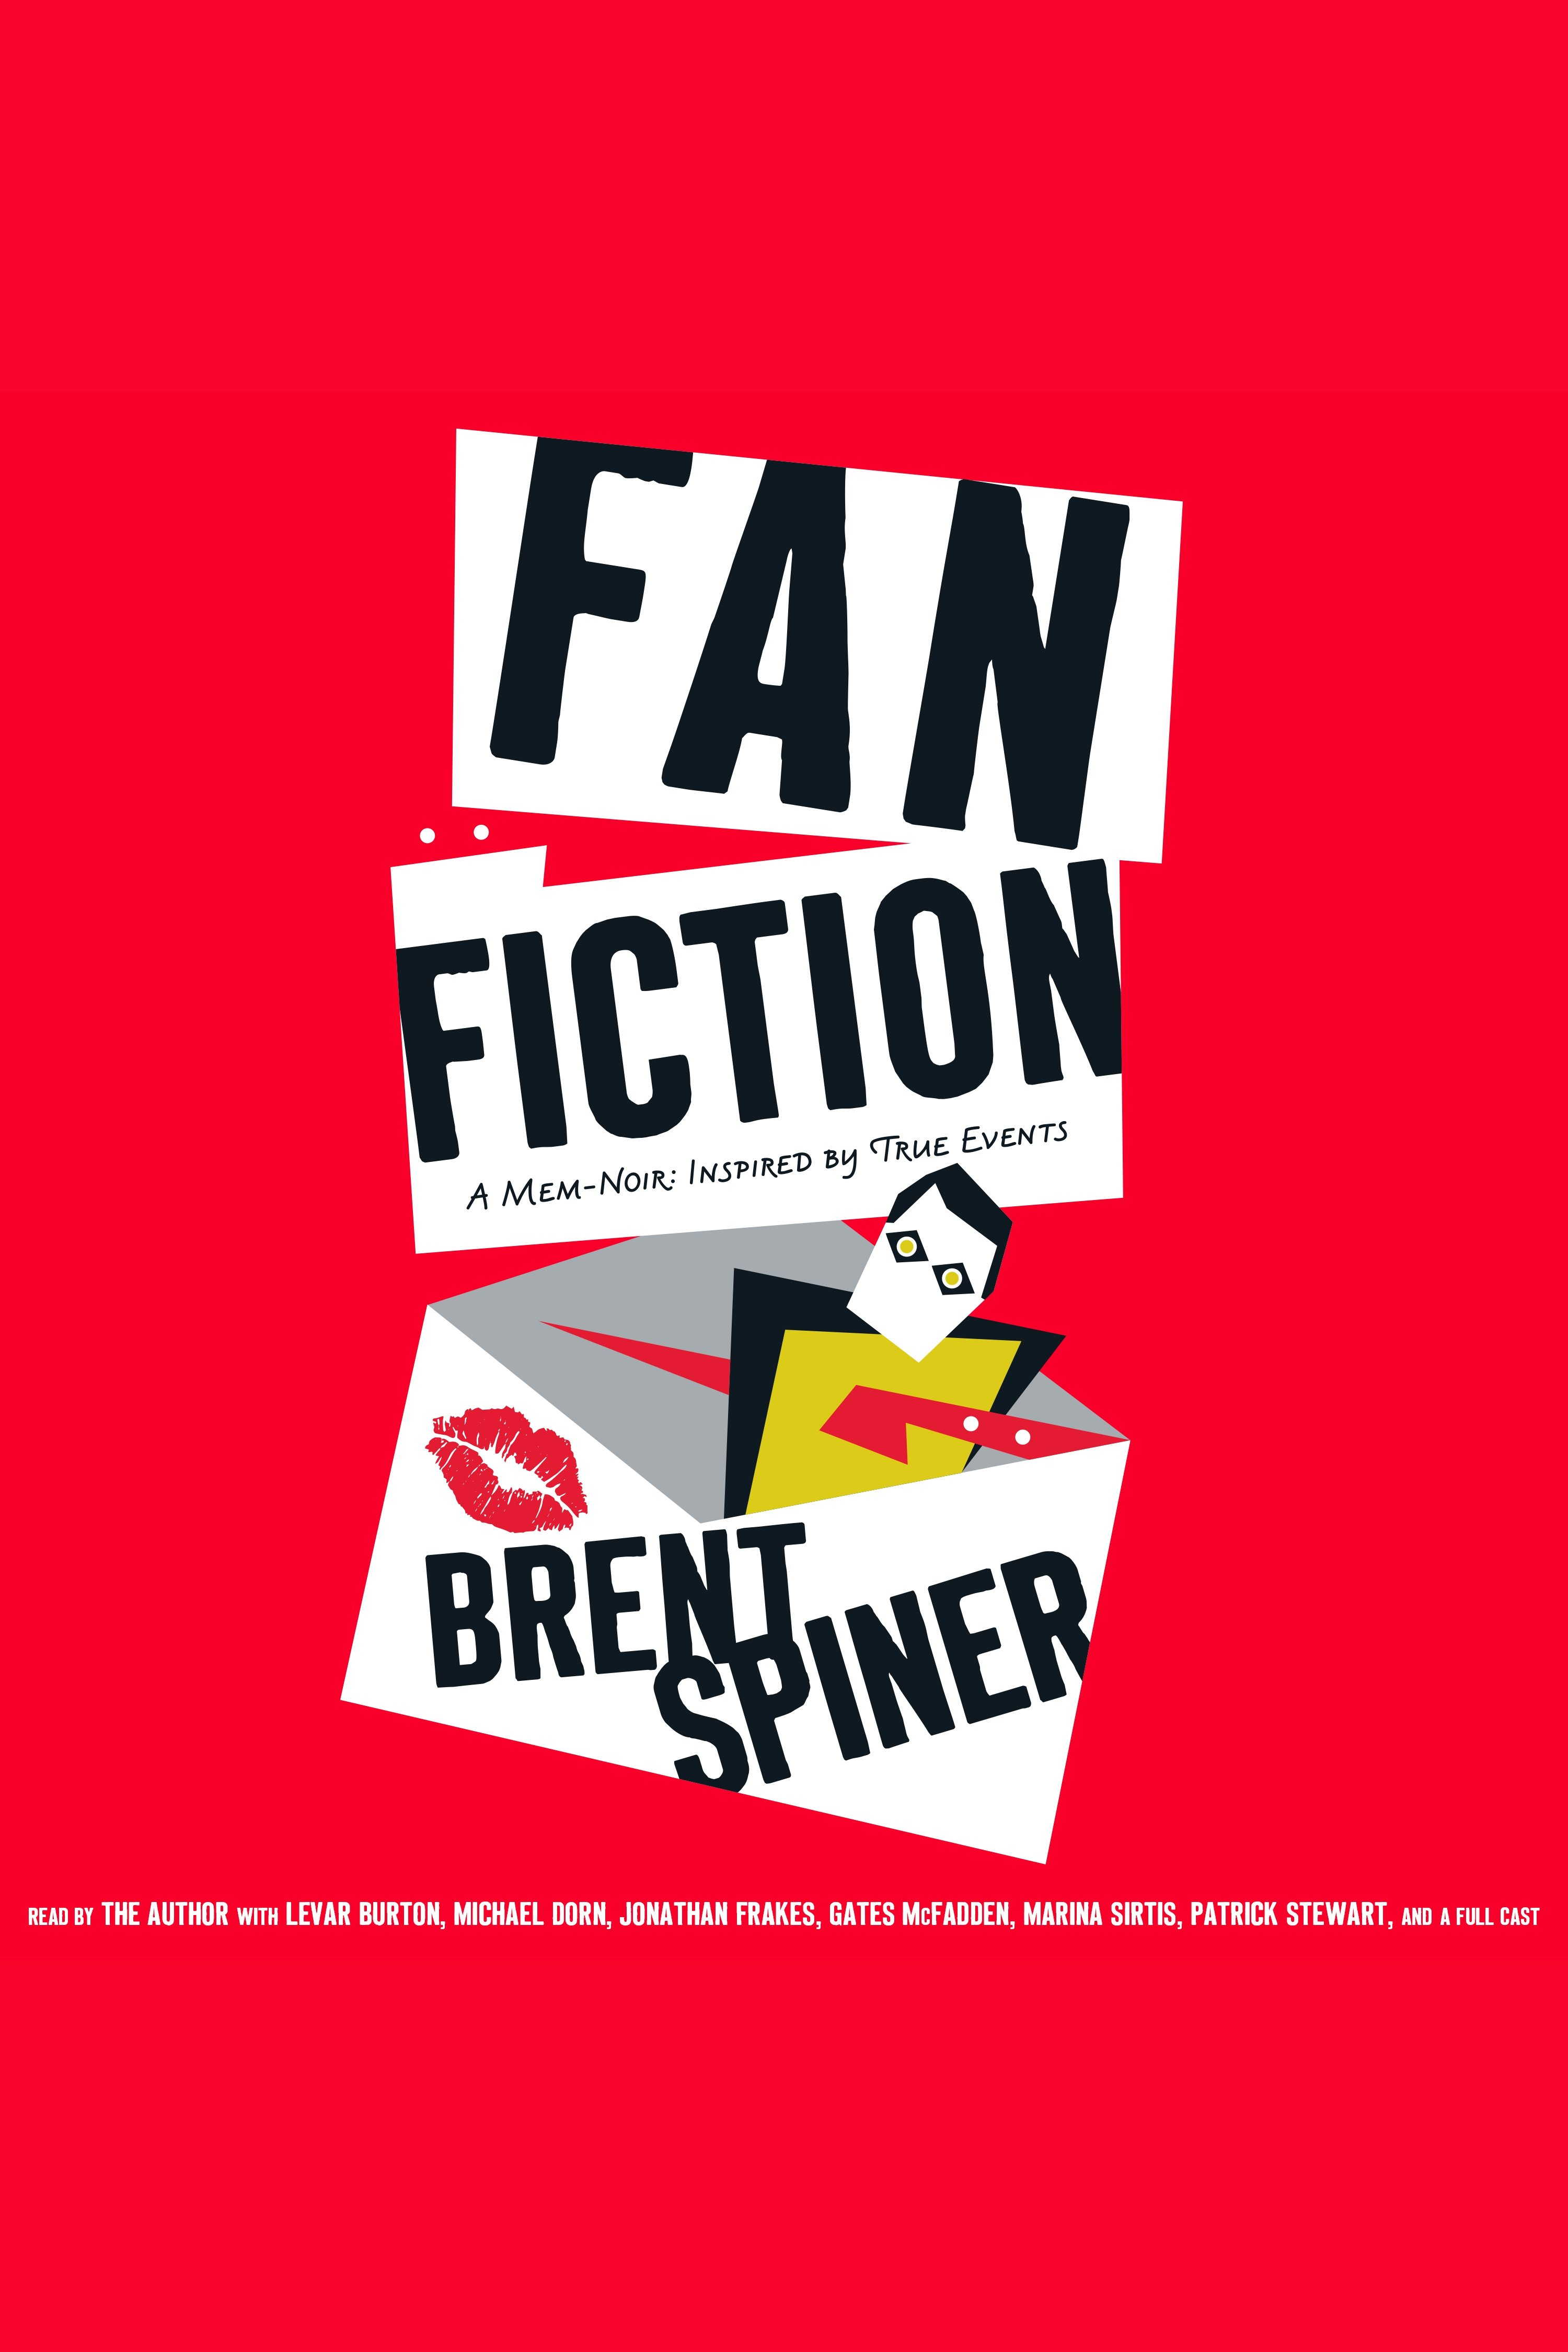 Cover Image of Fan Fiction